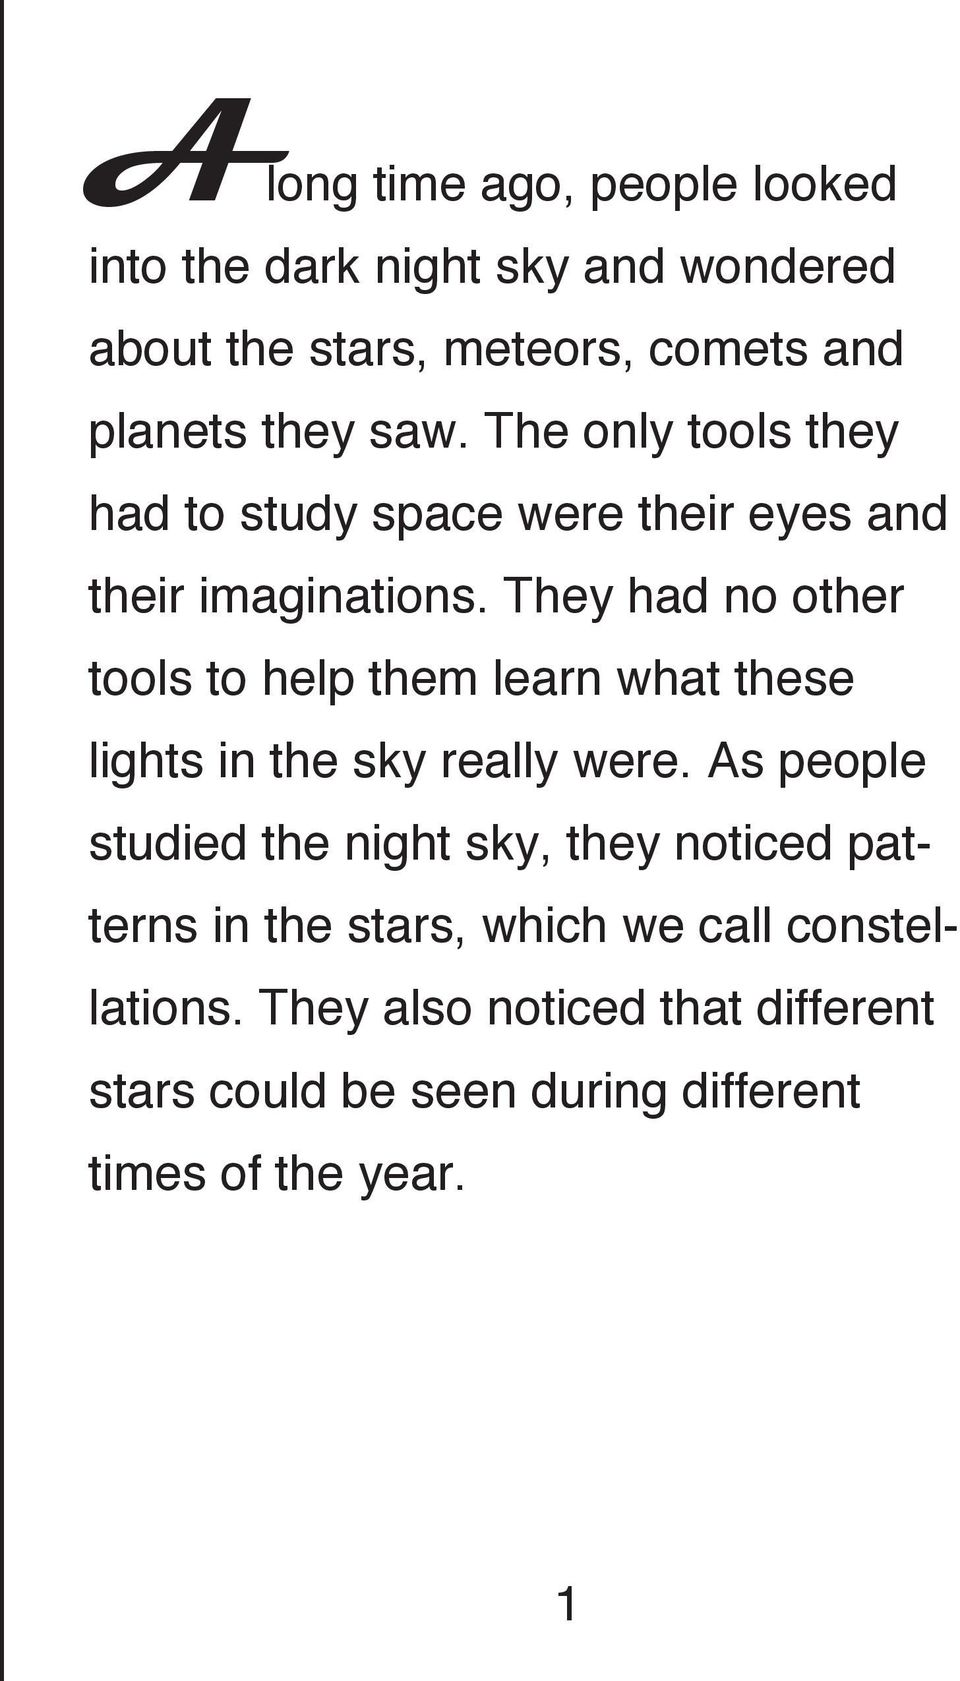 They had no other tools to help them learn what these lights in the sky really were.